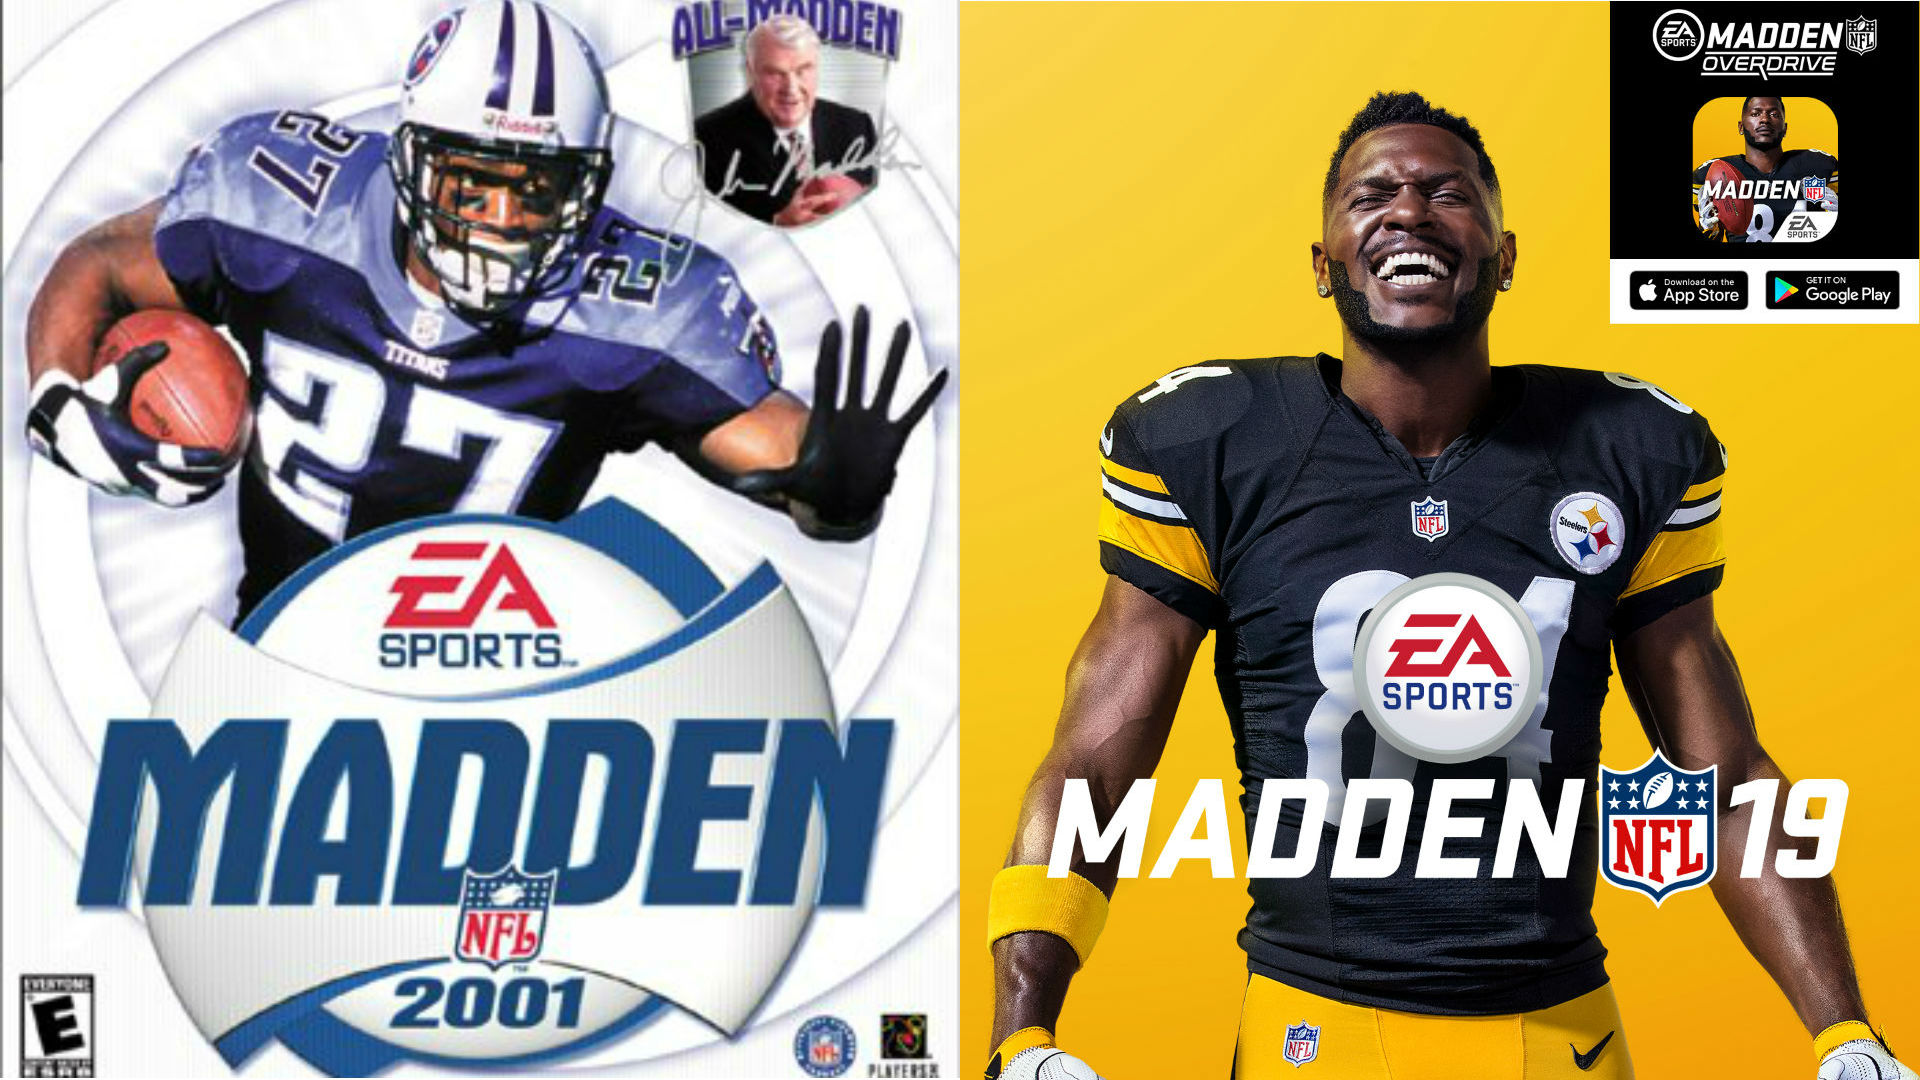 Madden' cover athletes since 2000: From Eddie George to